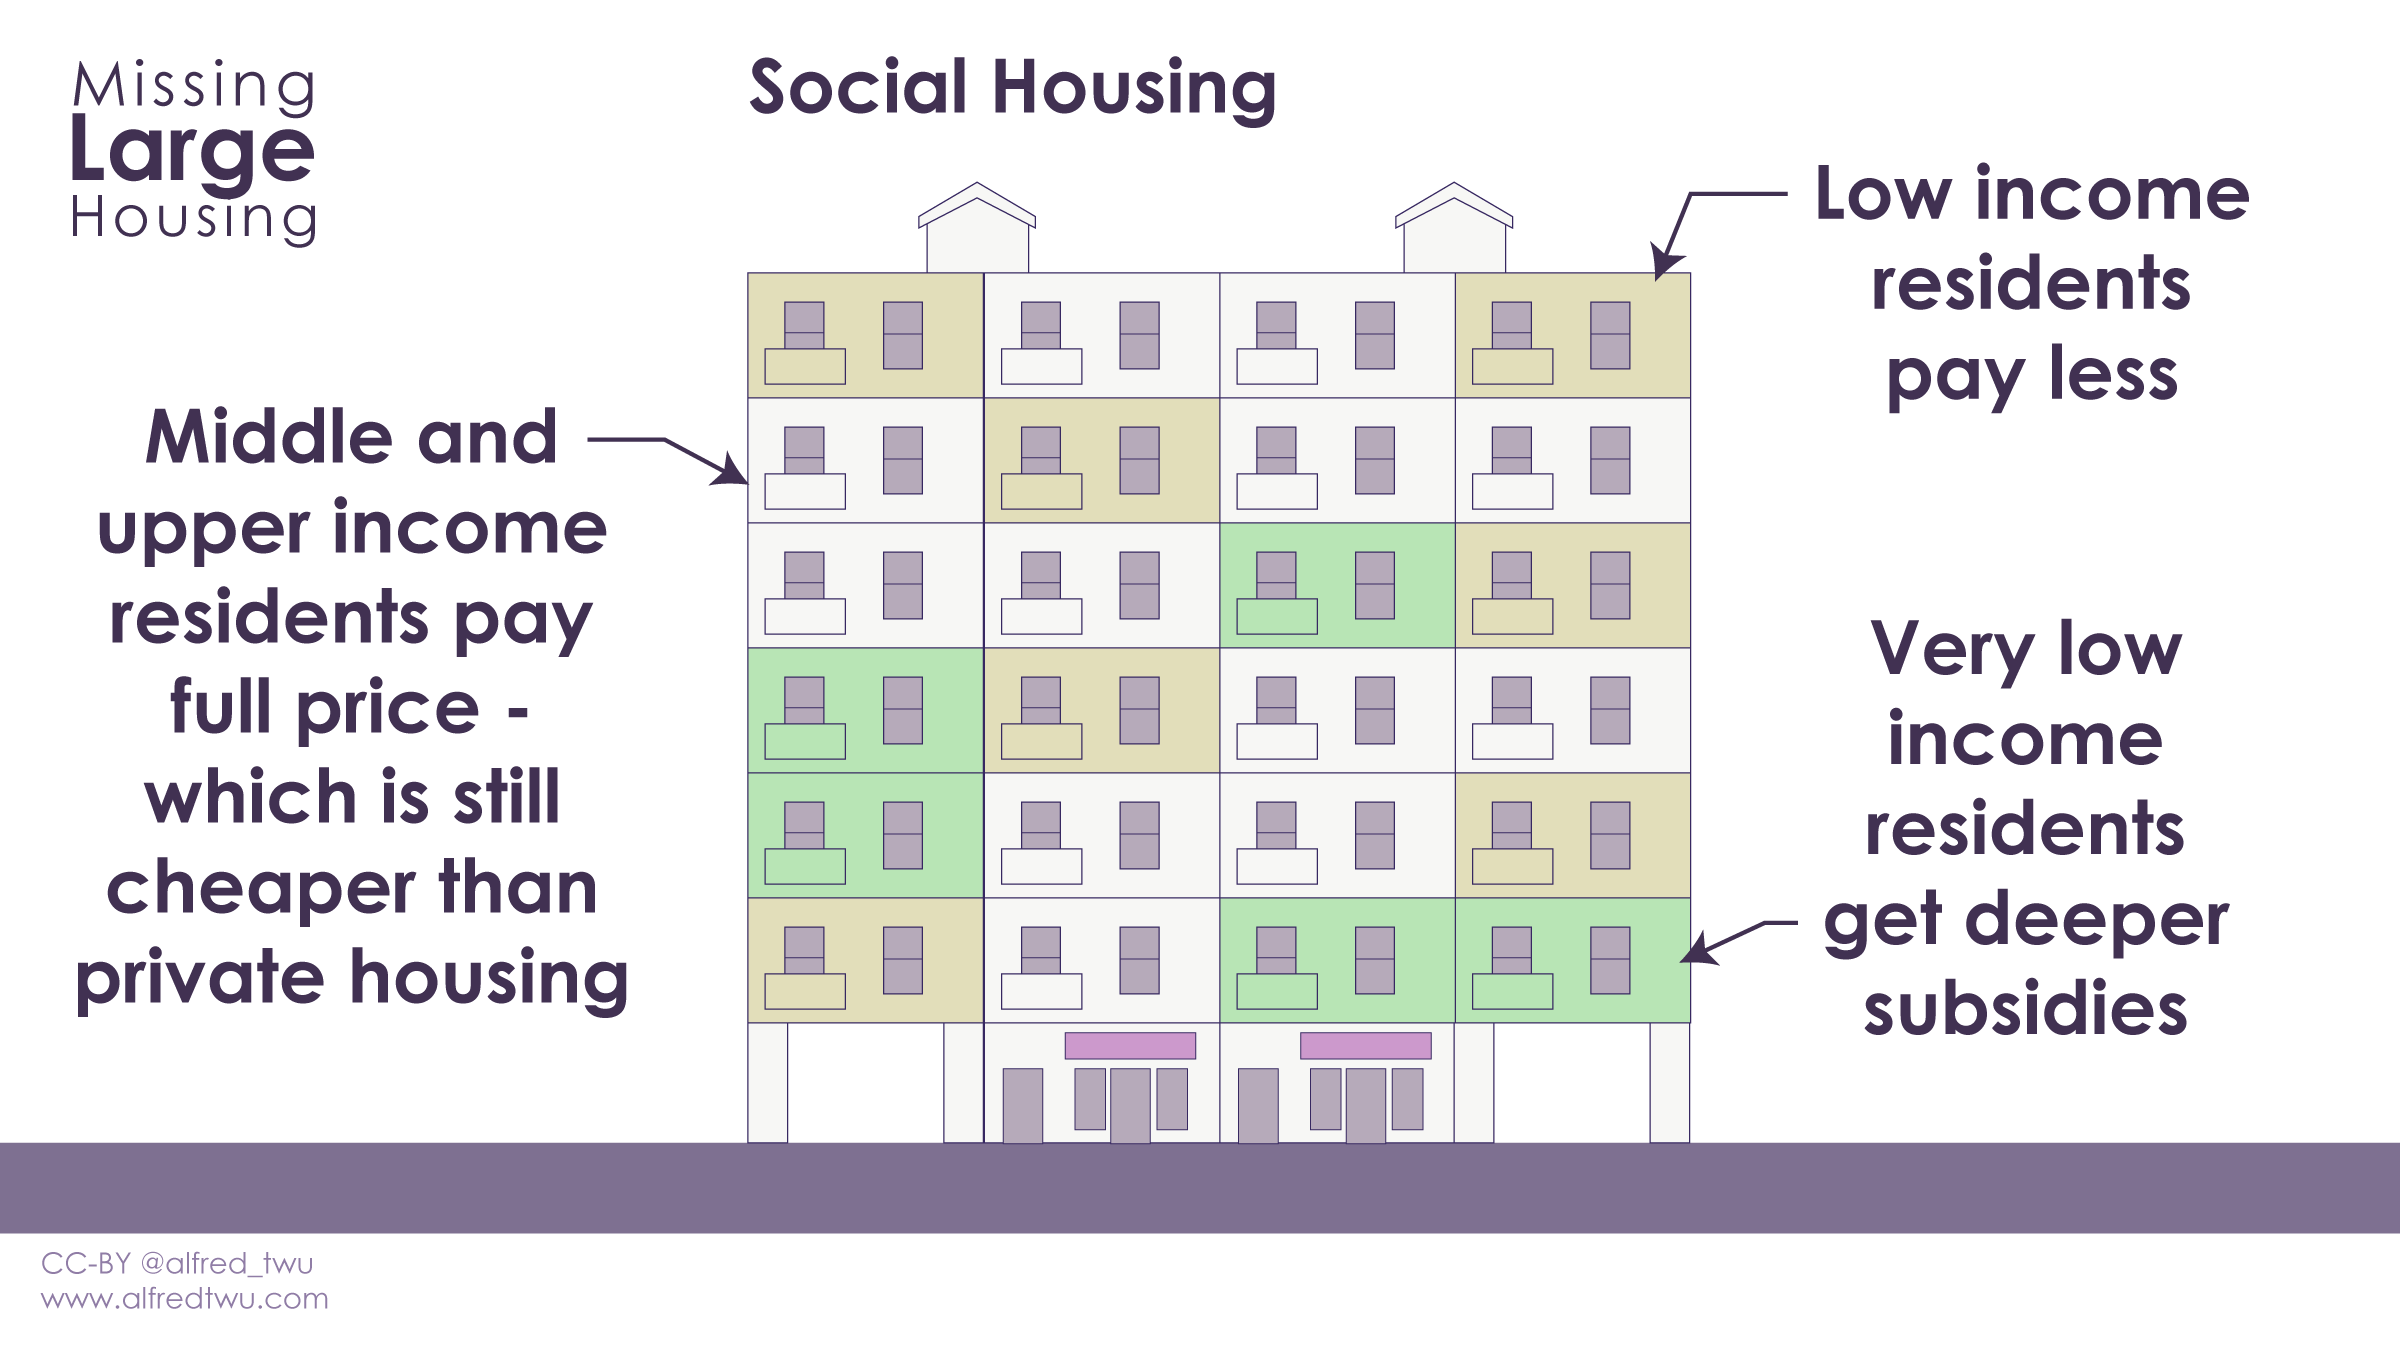 Social housing: middle and upper income pay full price, which is still less than private housing. Low income residents pay less.